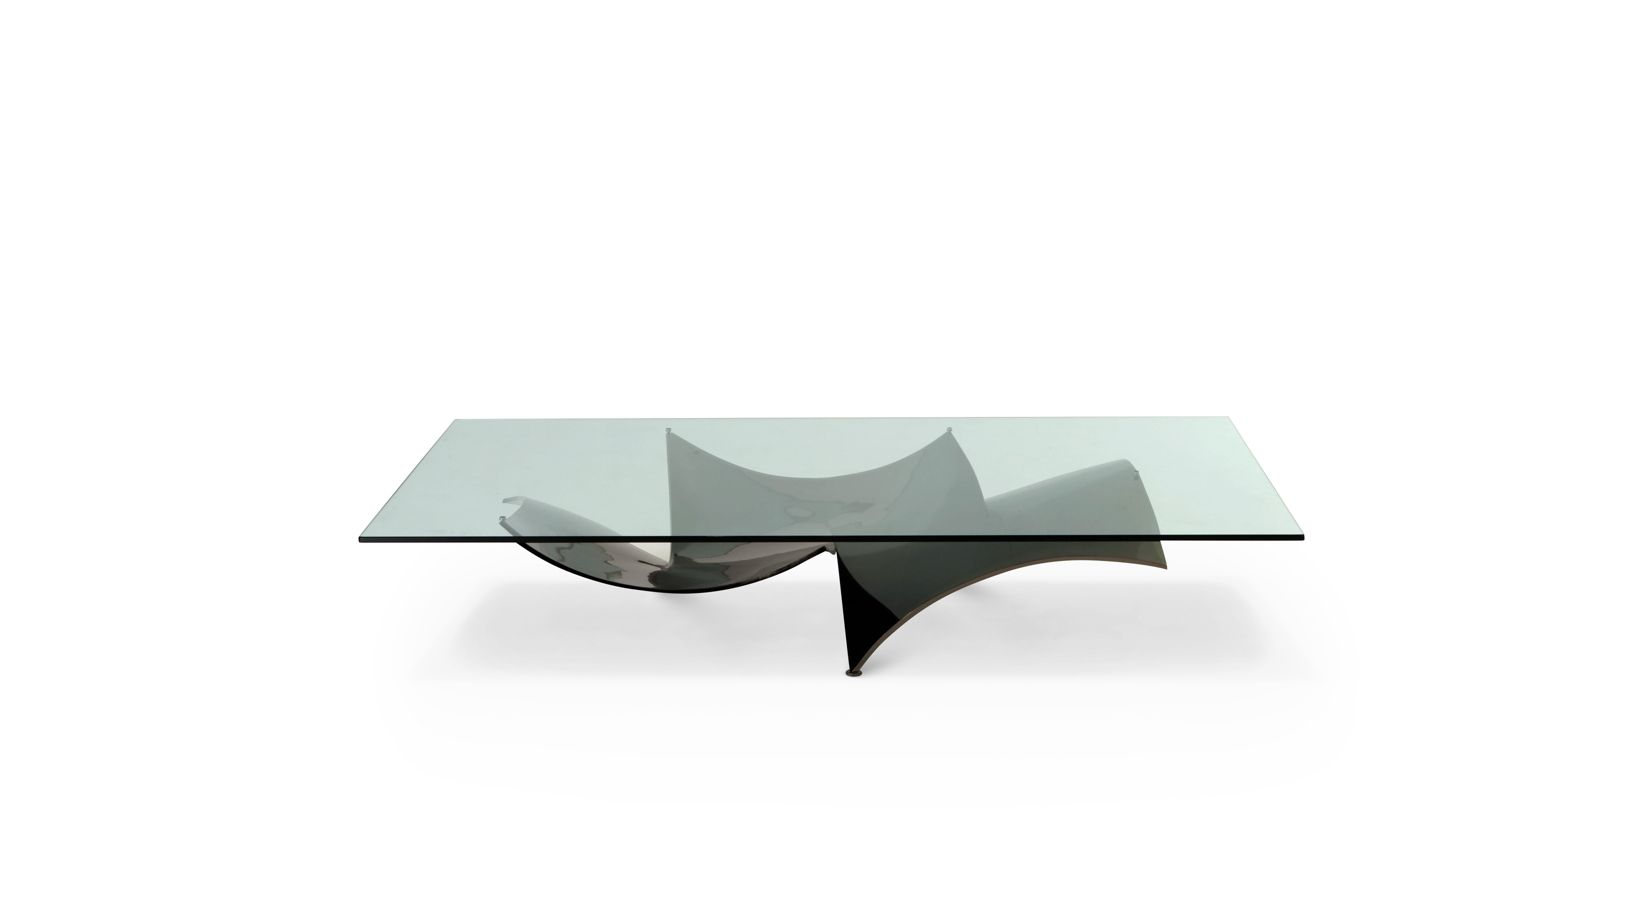 voiles dining table roche bobois. Black Bedroom Furniture Sets. Home Design Ideas